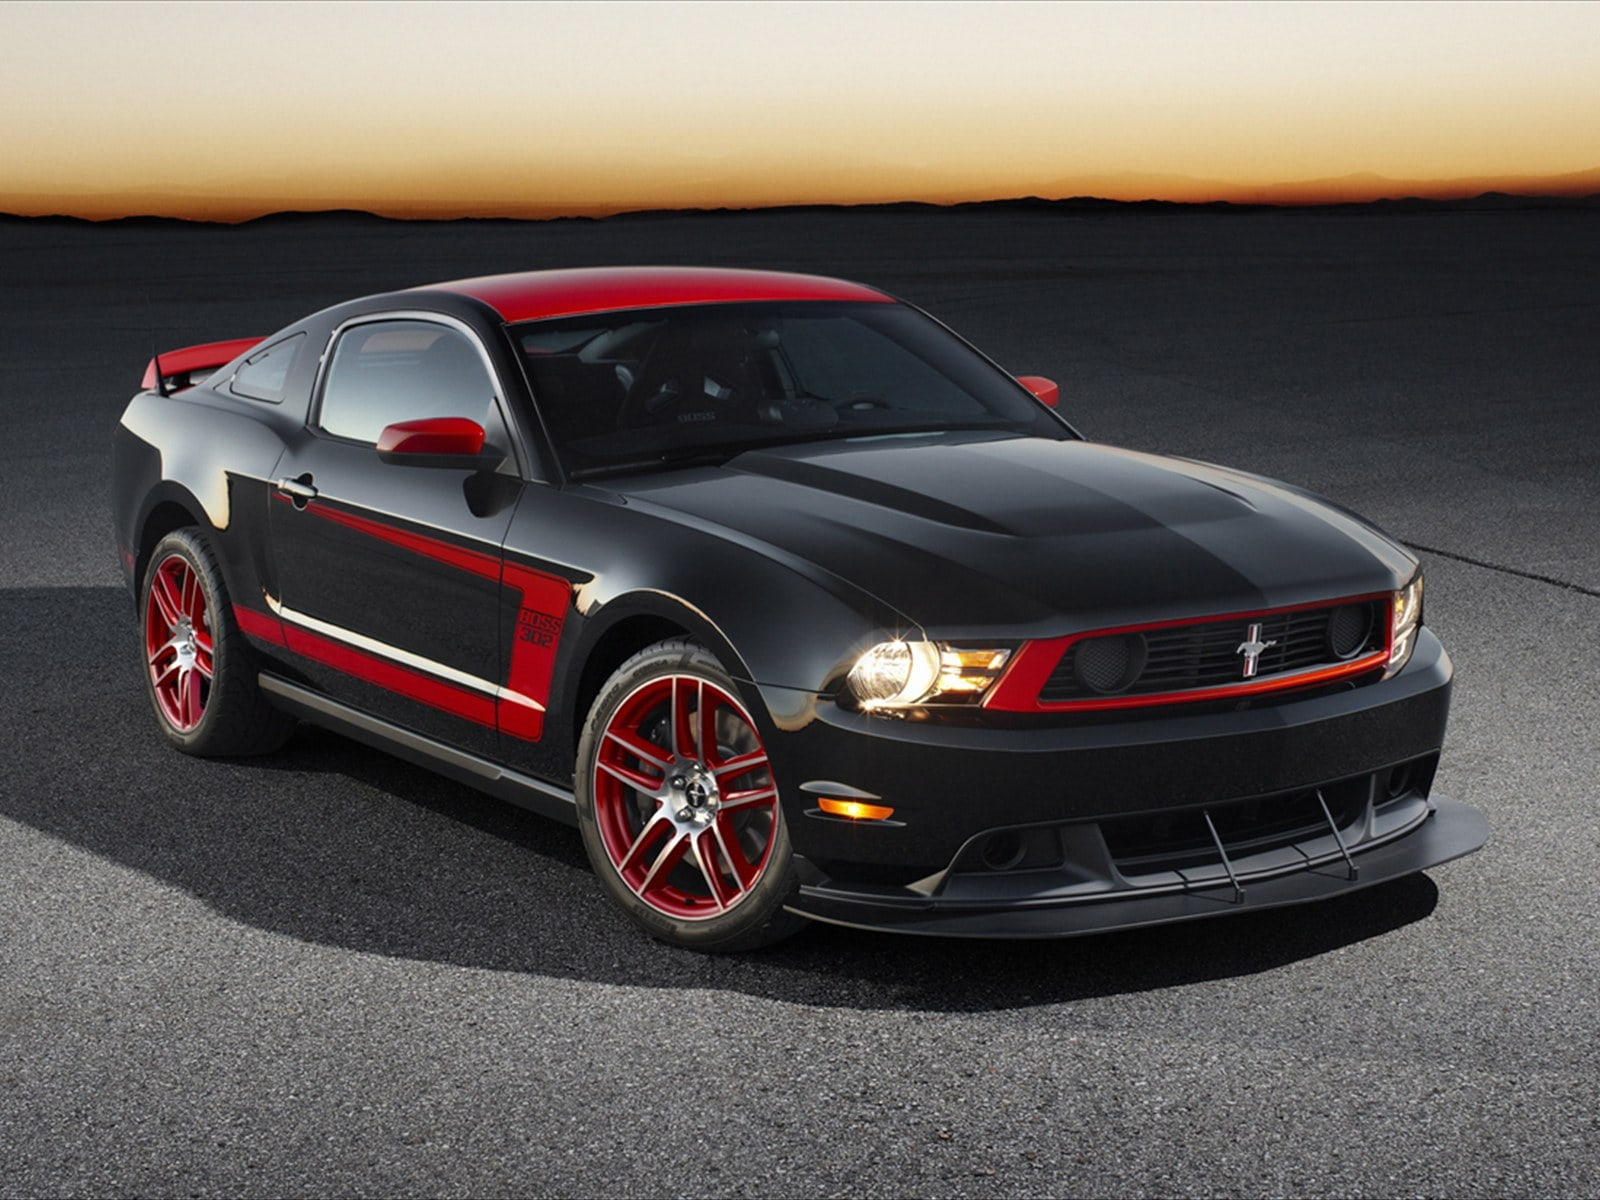 Ford Mustang Boss 302 Laguna Seca Wallpapers